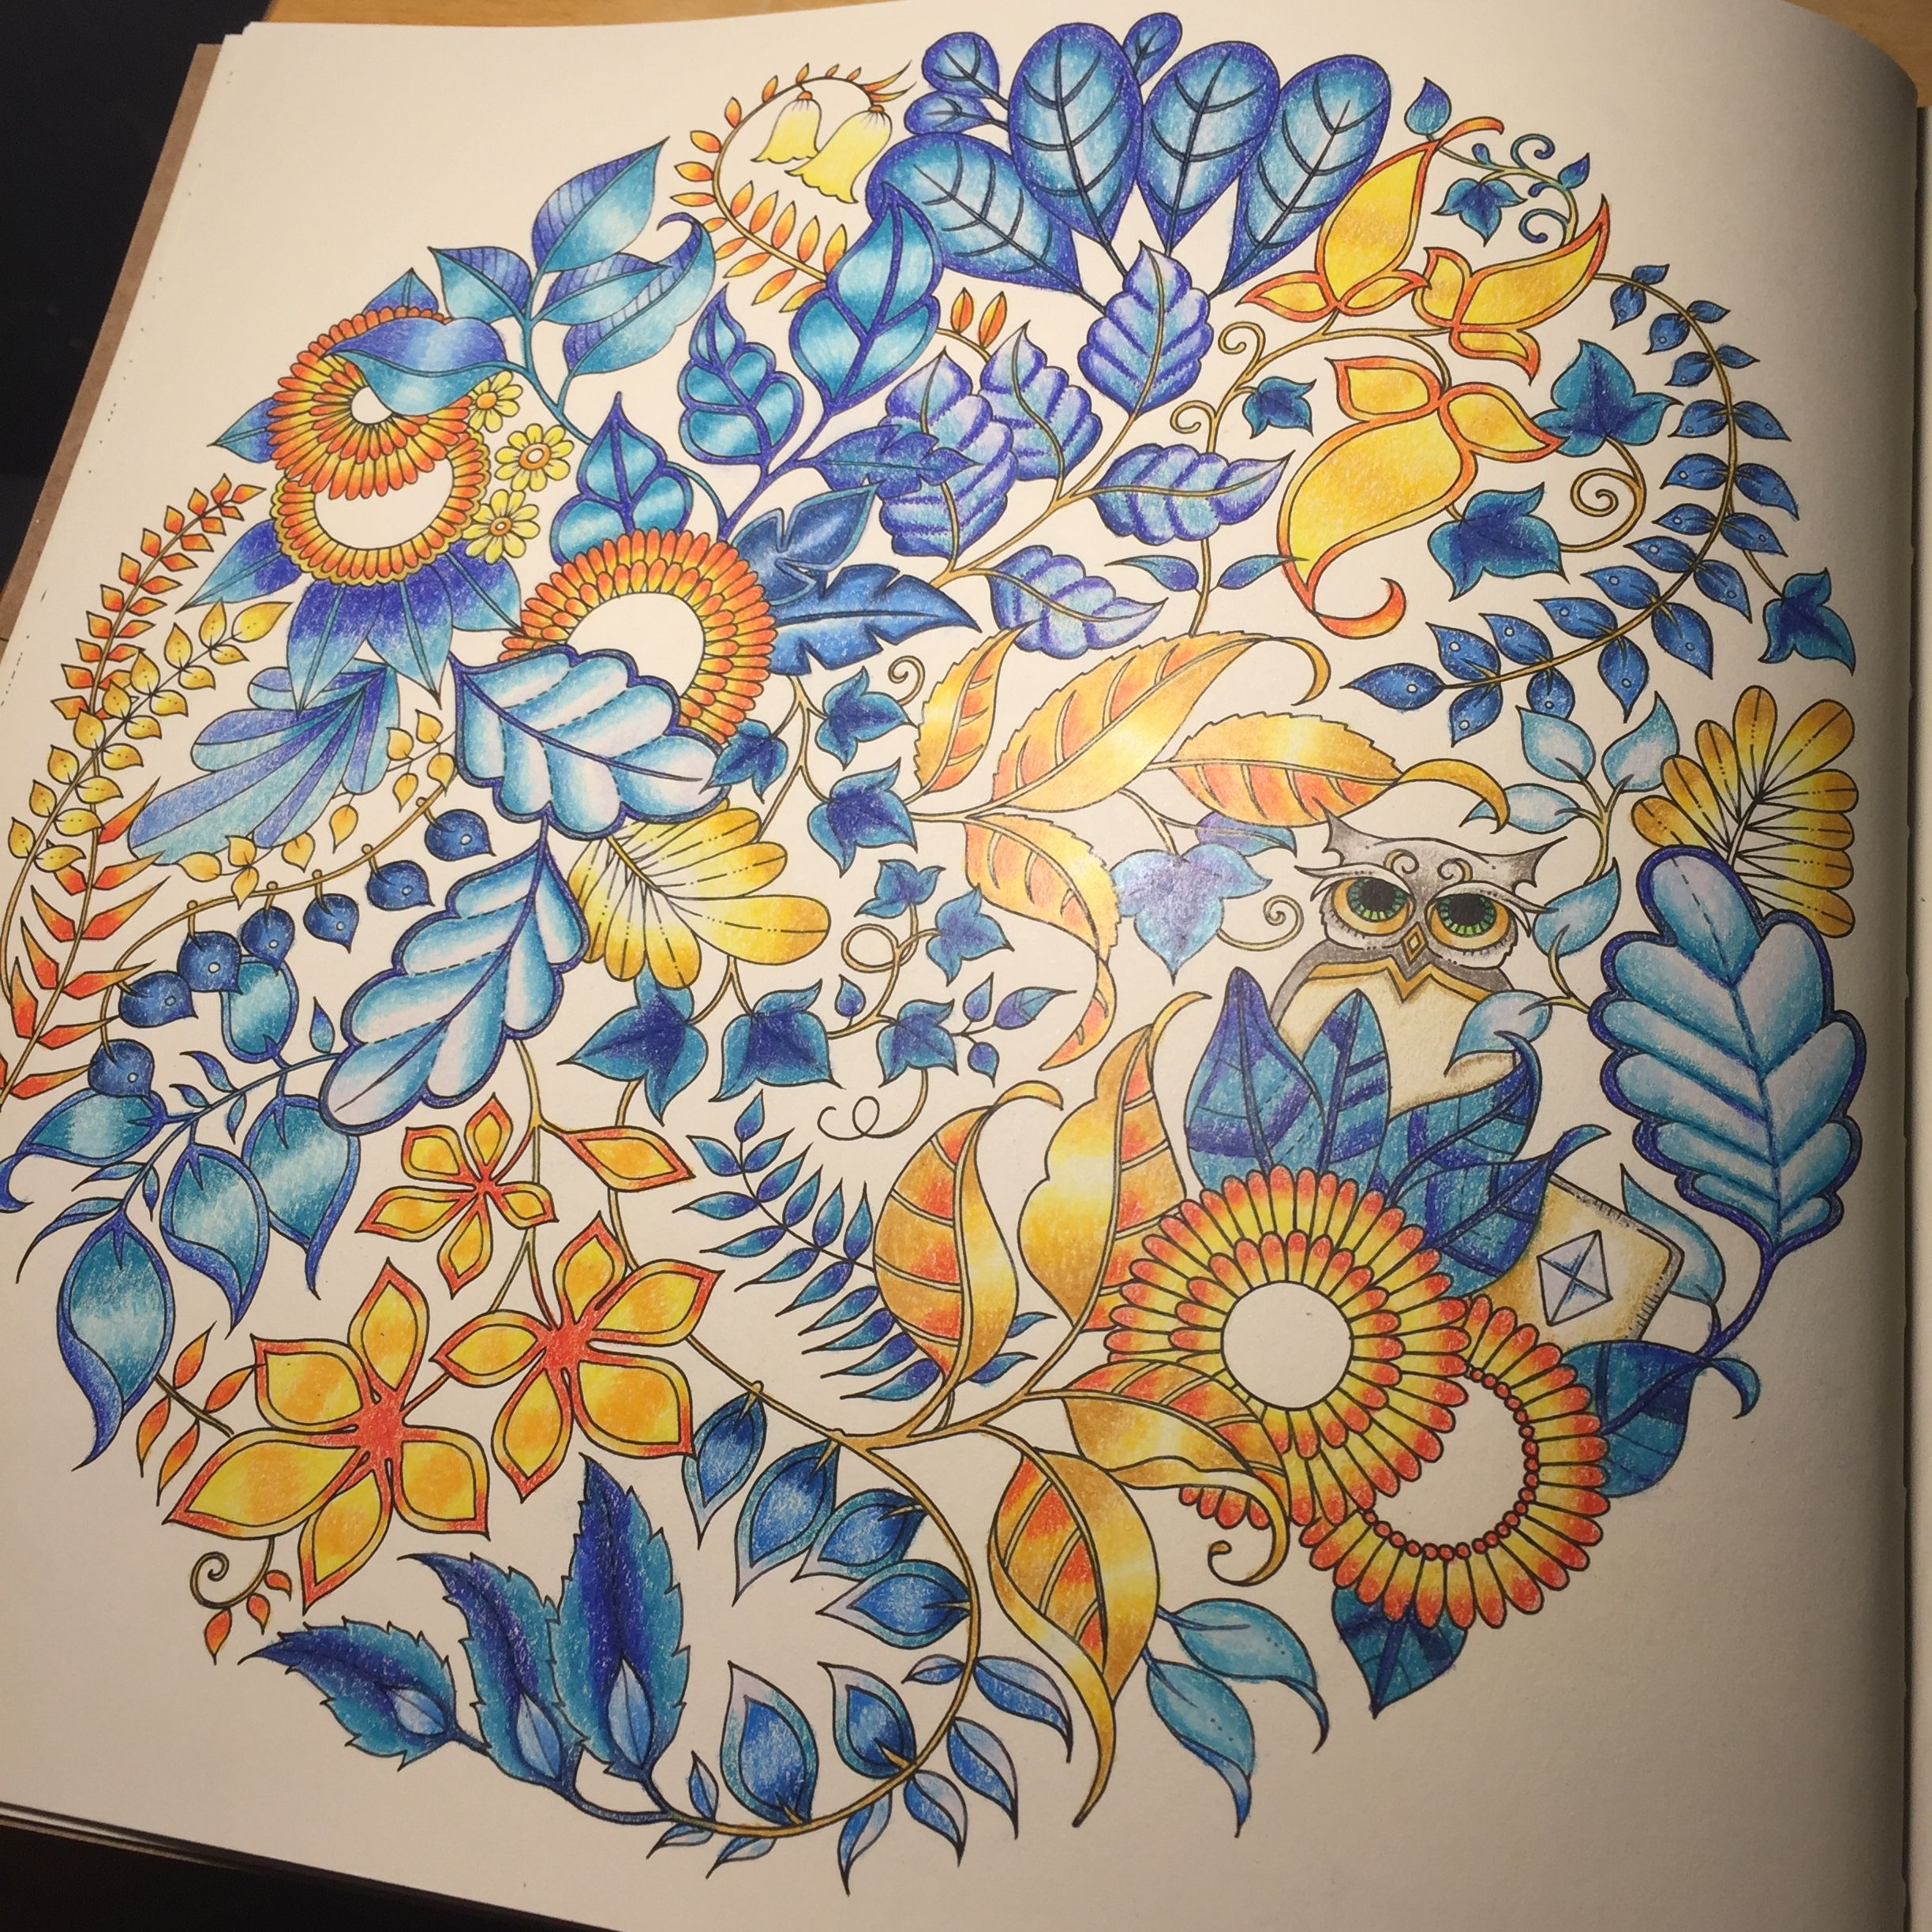 Enchanted Forest Adult Coloring Book By Johanna Basford Inspiration From Peta Hewit Prismacolor Coloredpencil